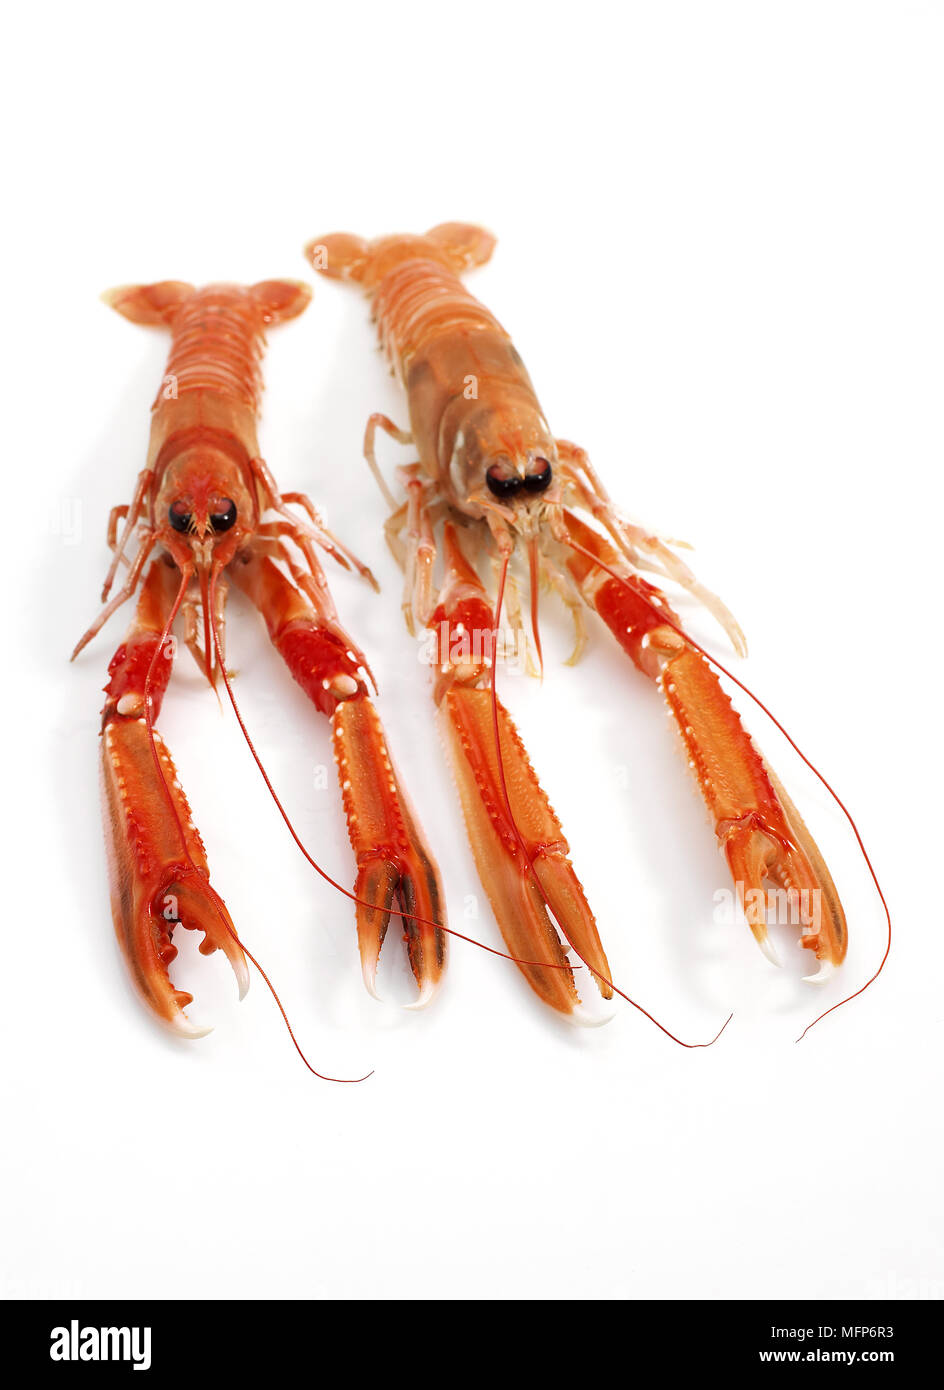 Dublin Bay Prawn or Norway Lobster or Scampi, nephrops norvegicus, Crustacean against White Background - Stock Image